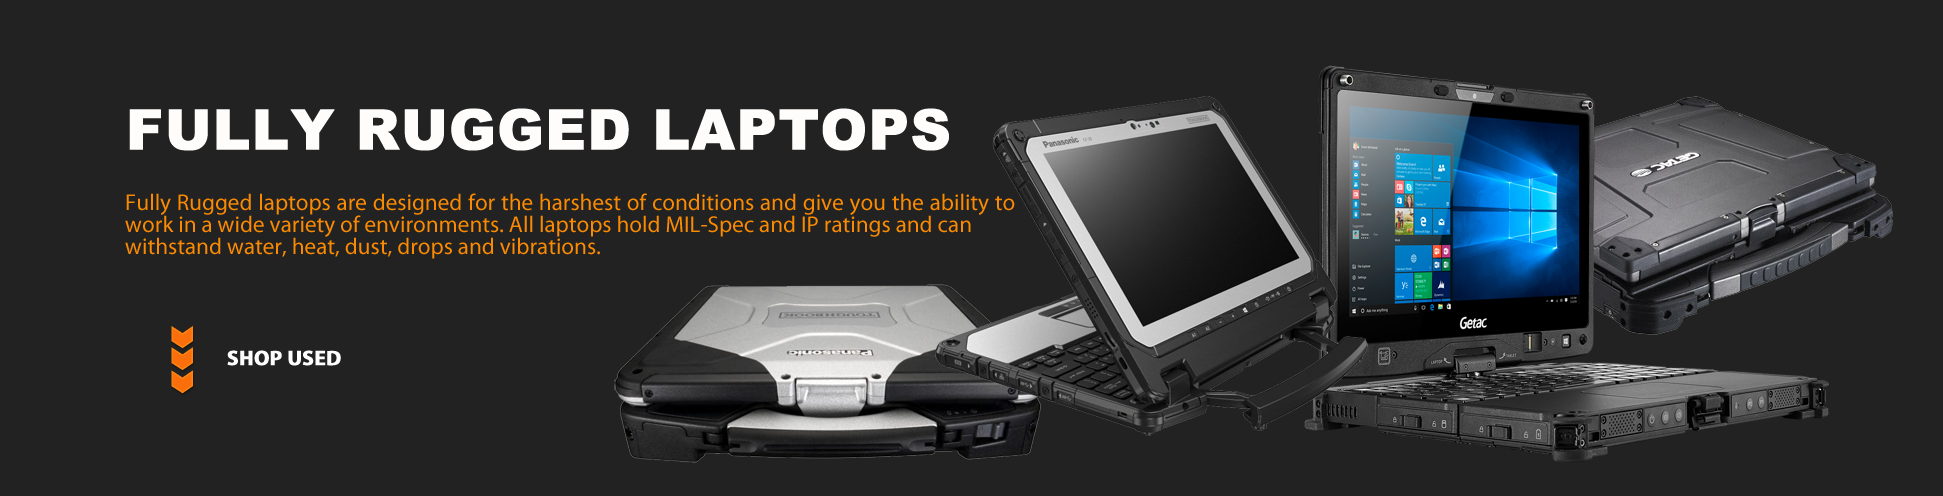 Fully Rugged Laptops - Used | Go-Rugged